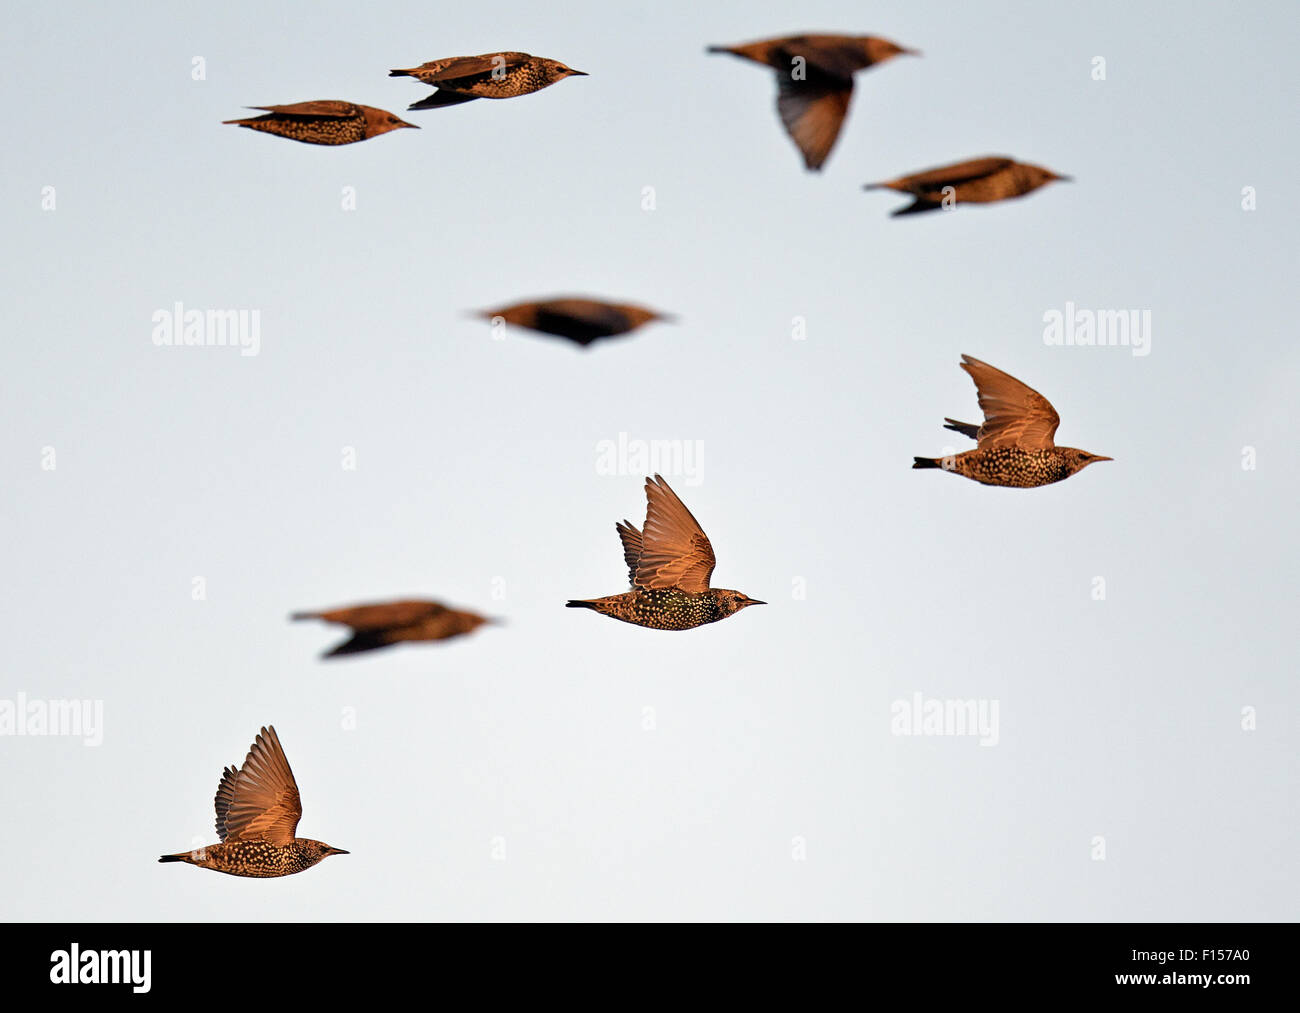 Common Starling (Sturnus vulgaris) flock in flight, Falsterbo, Sweden, October - Stock Image